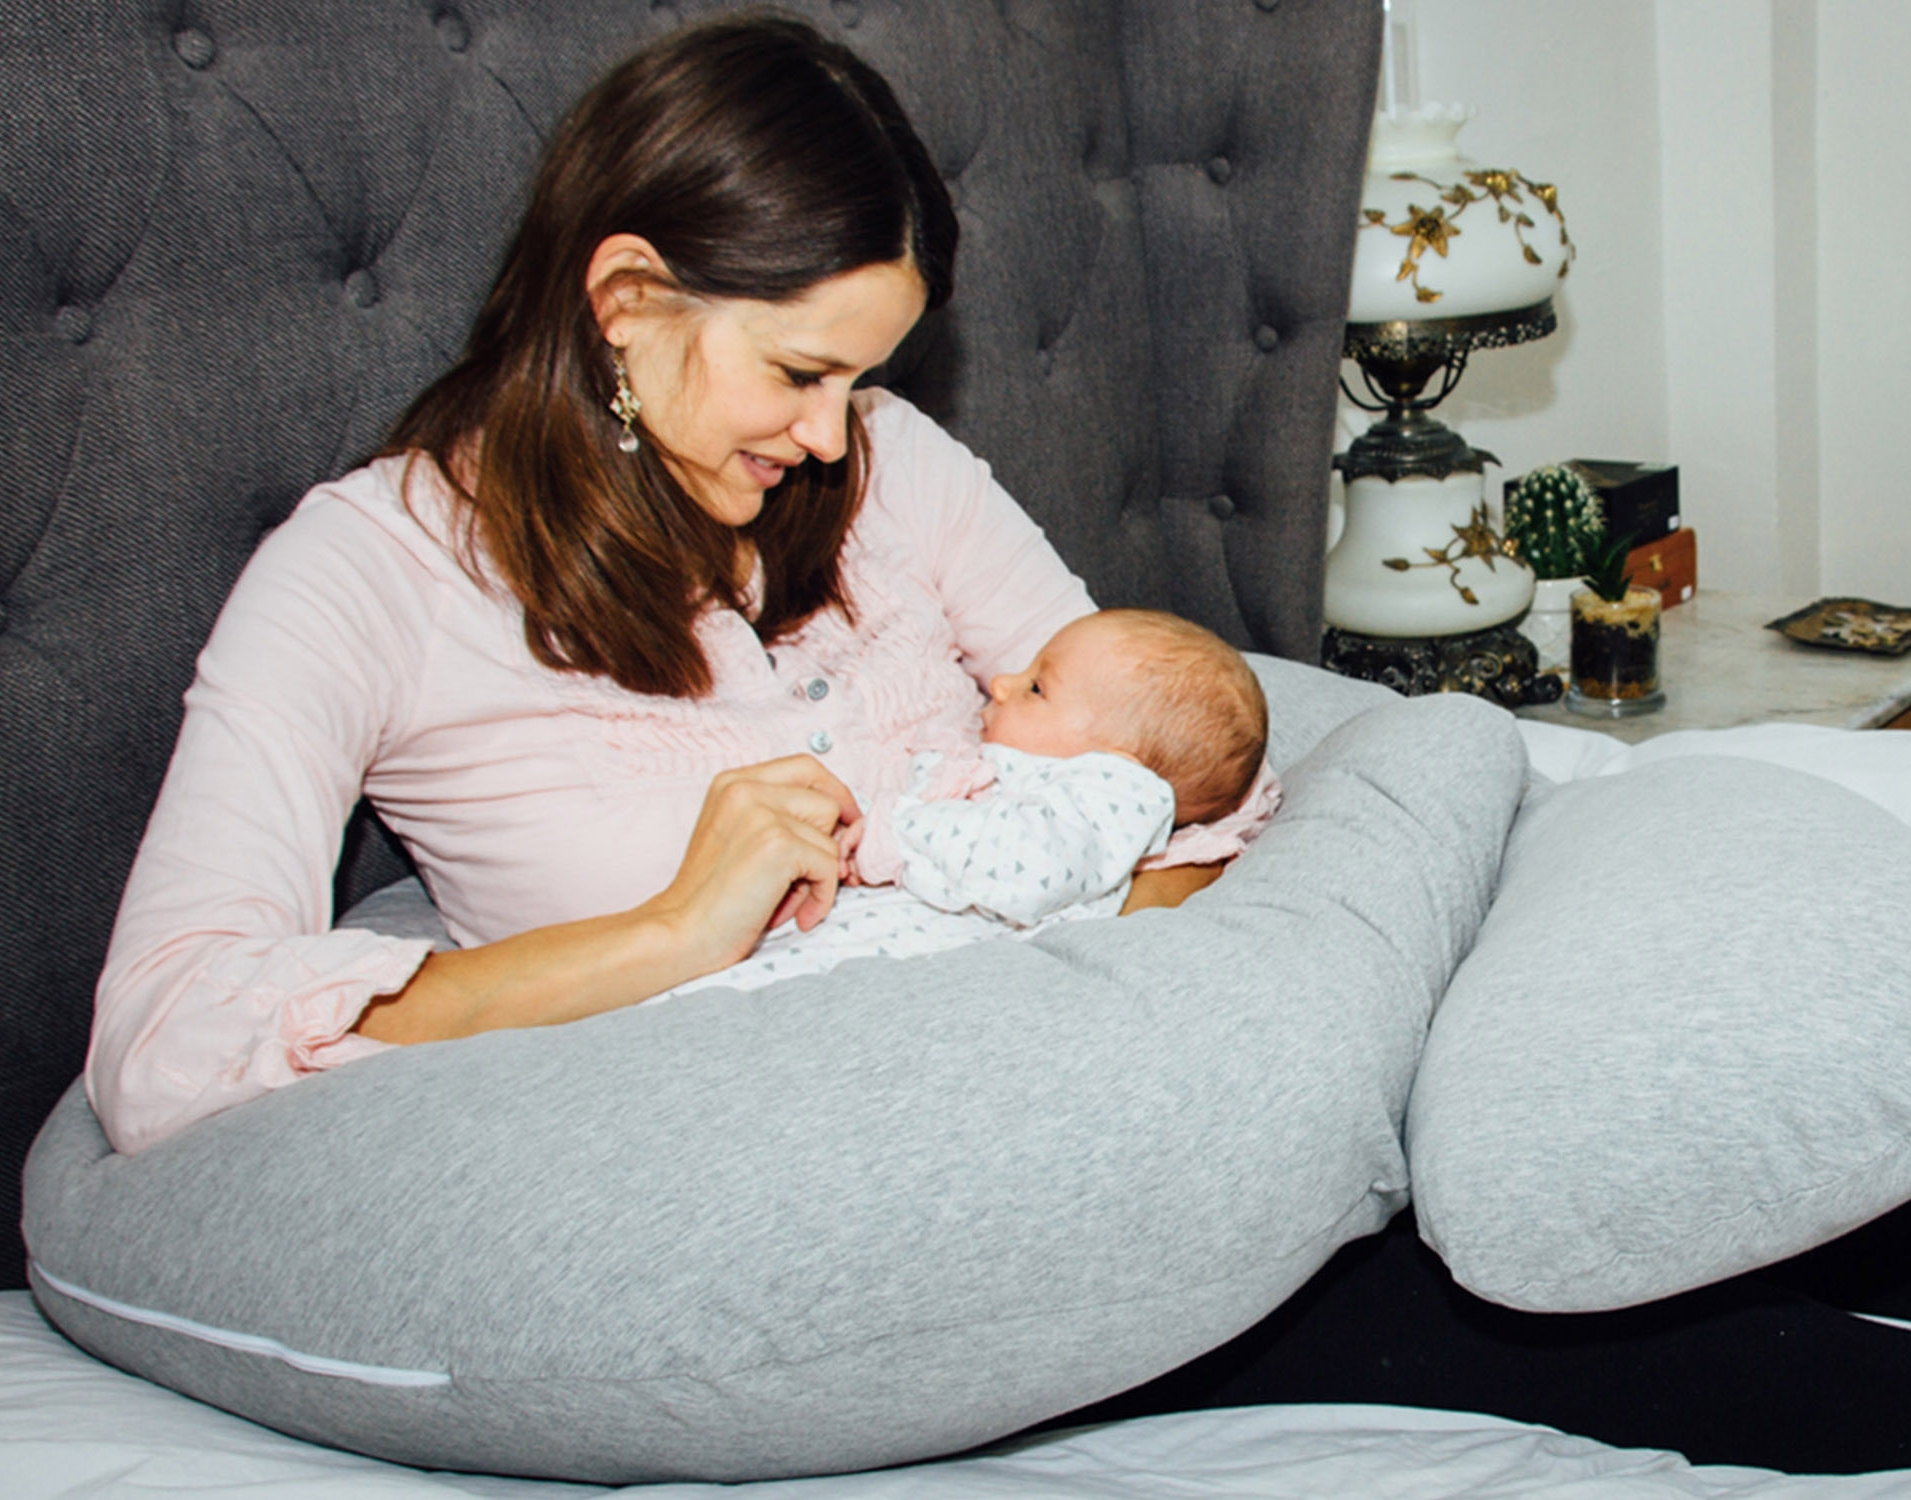 Some of our lovely models with our maternity pillow!